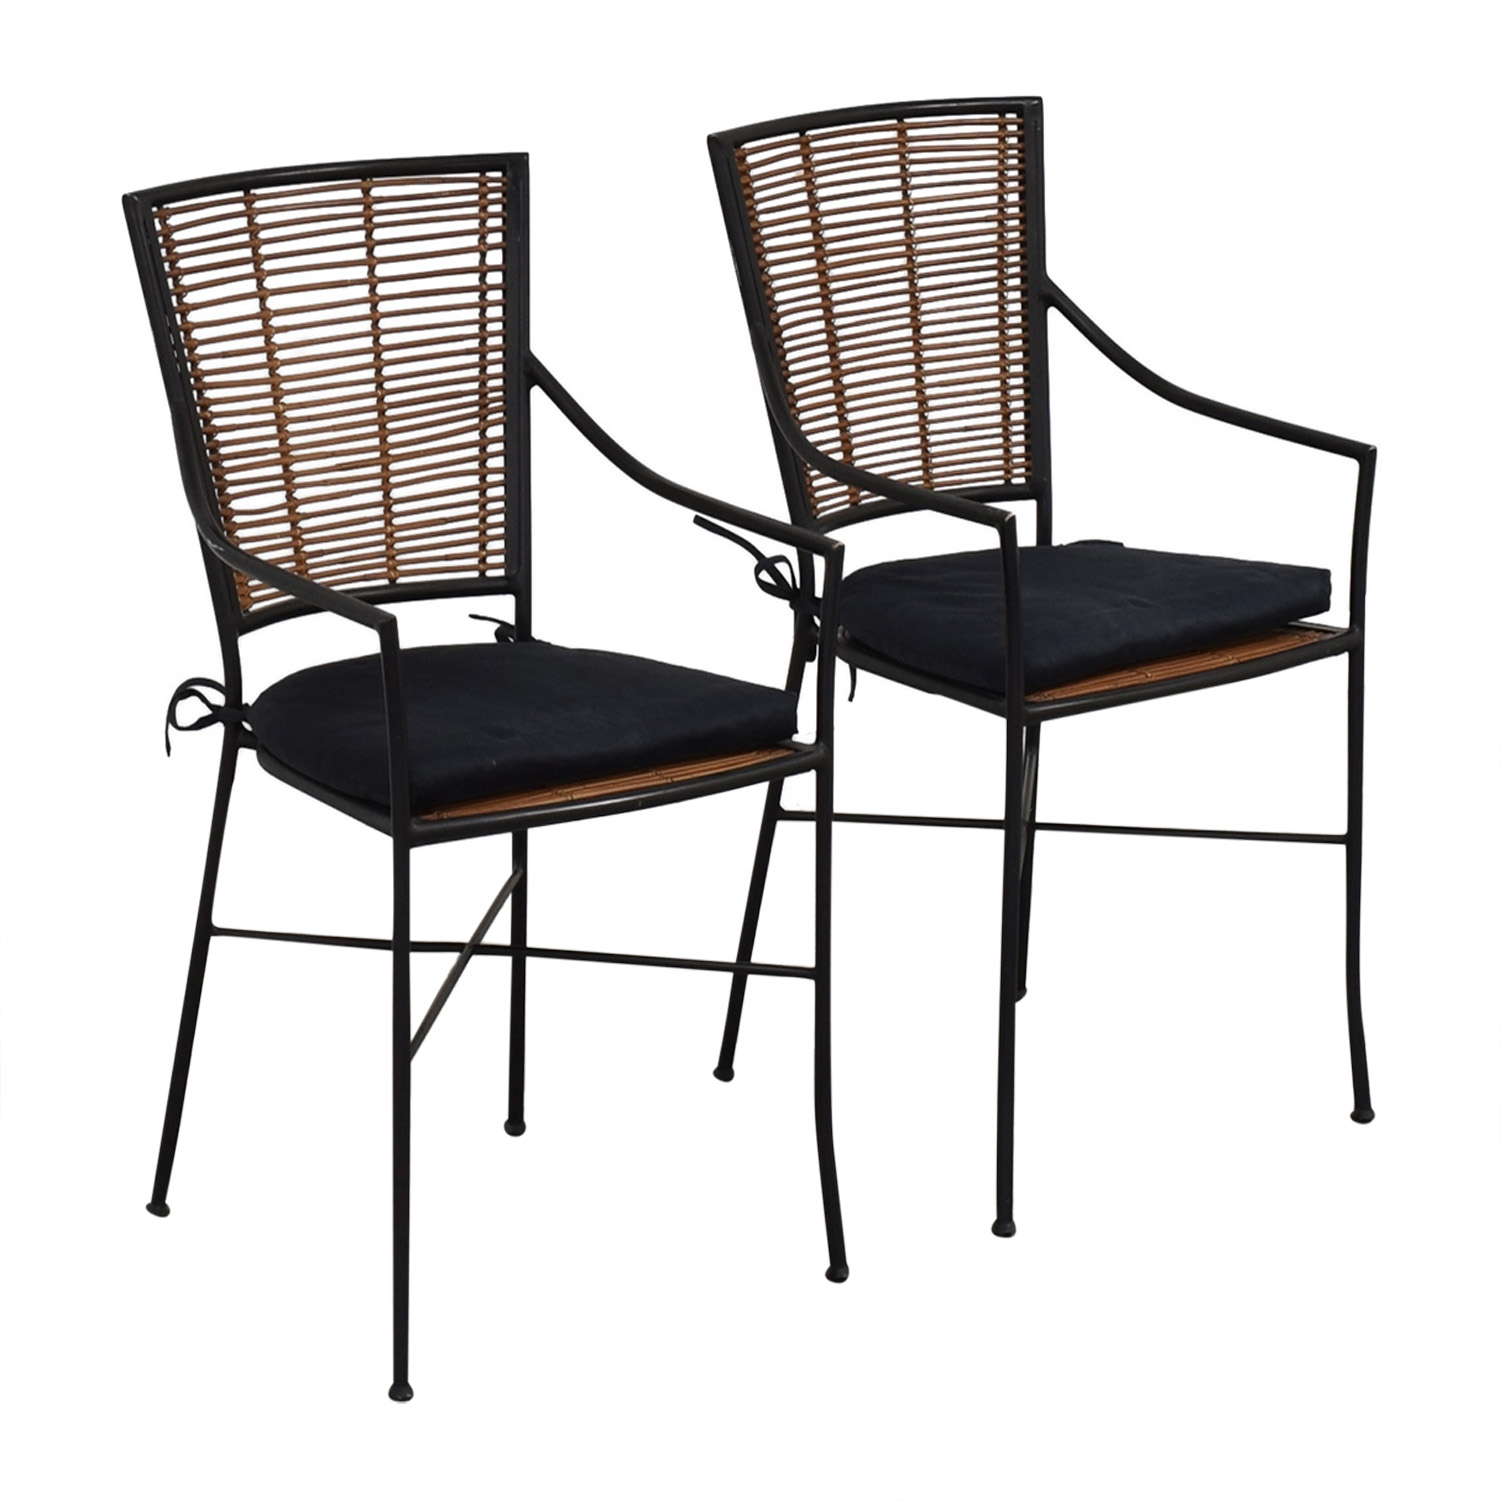 Crate & Barrel Crate & Barrel Dining Chairs used